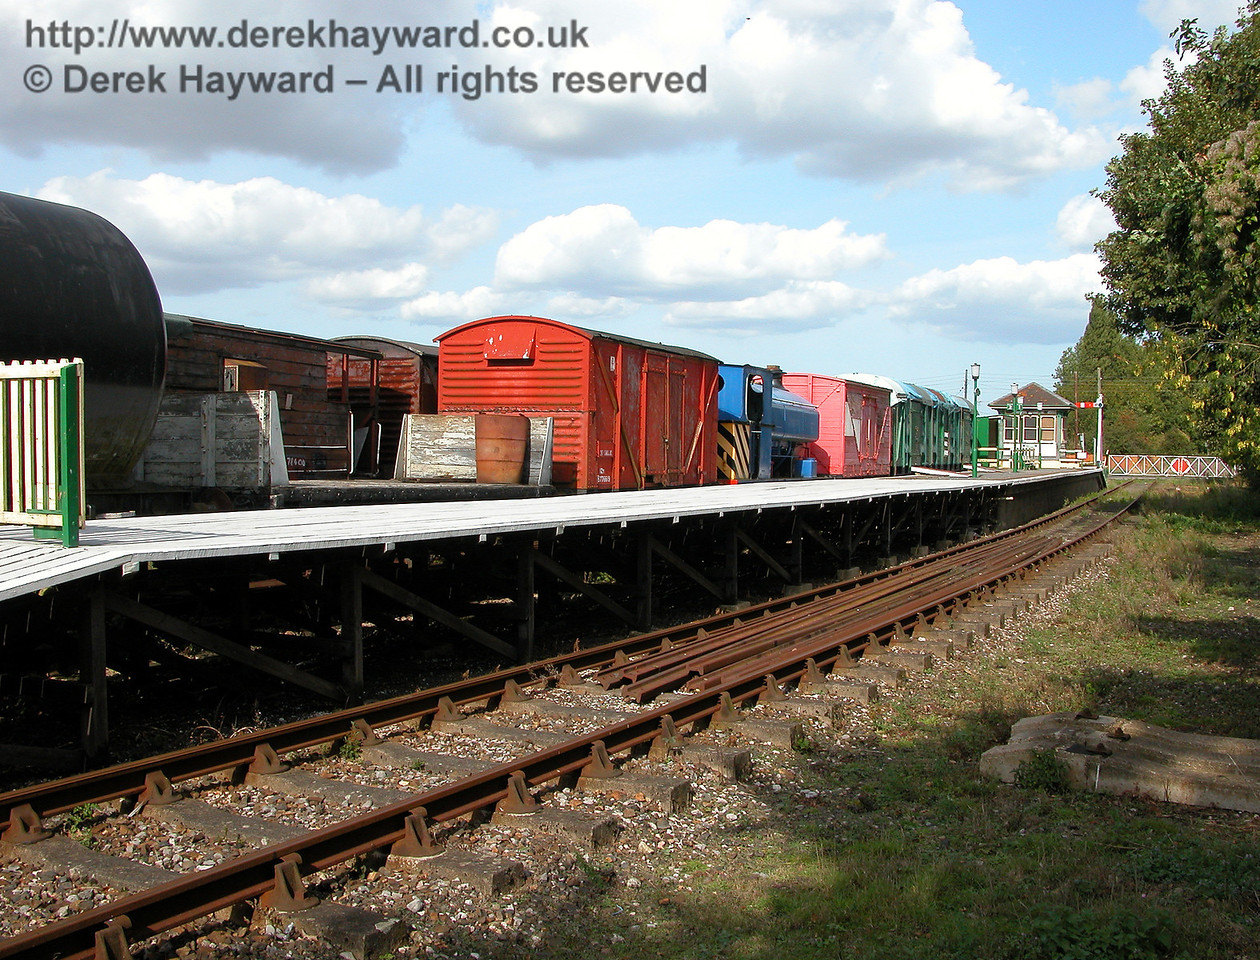 A 2006 view of Eythorne Station looking east, with the goods sidings in the background. 19.09.2006